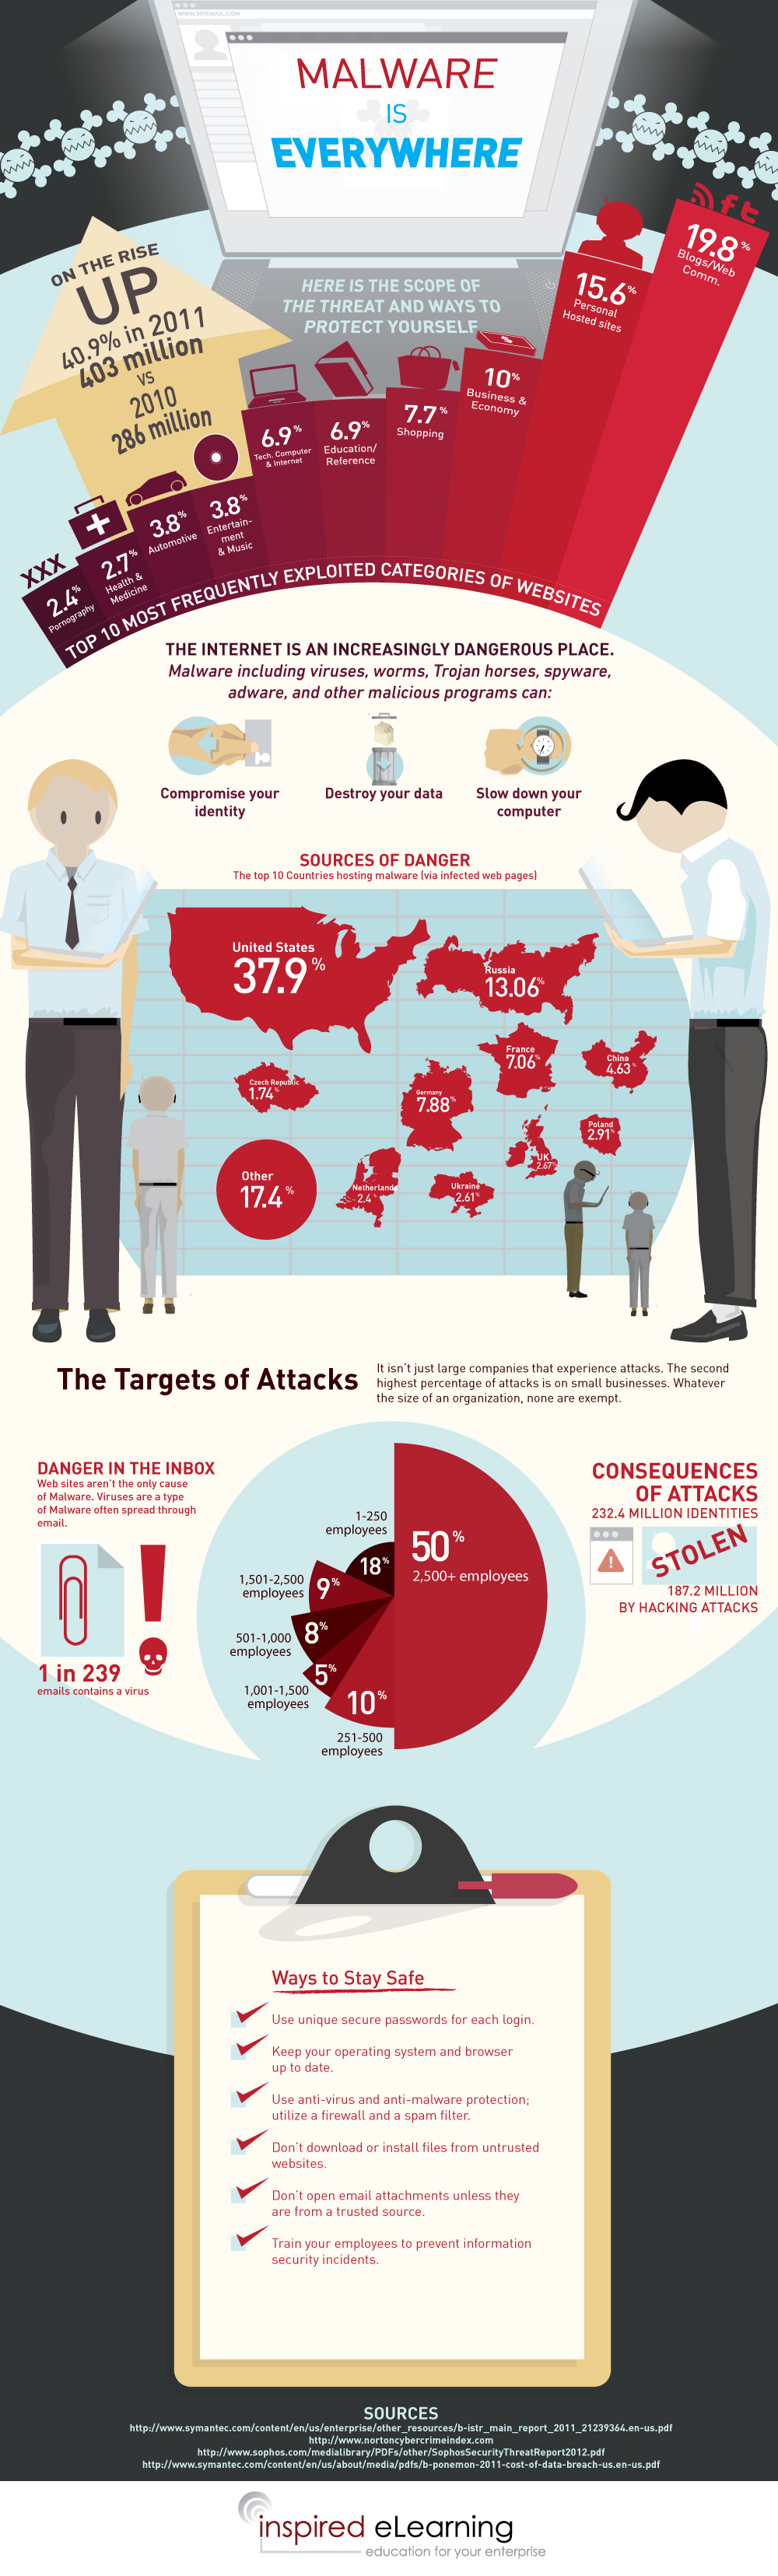 Malware is Everywhere: Security Infographic